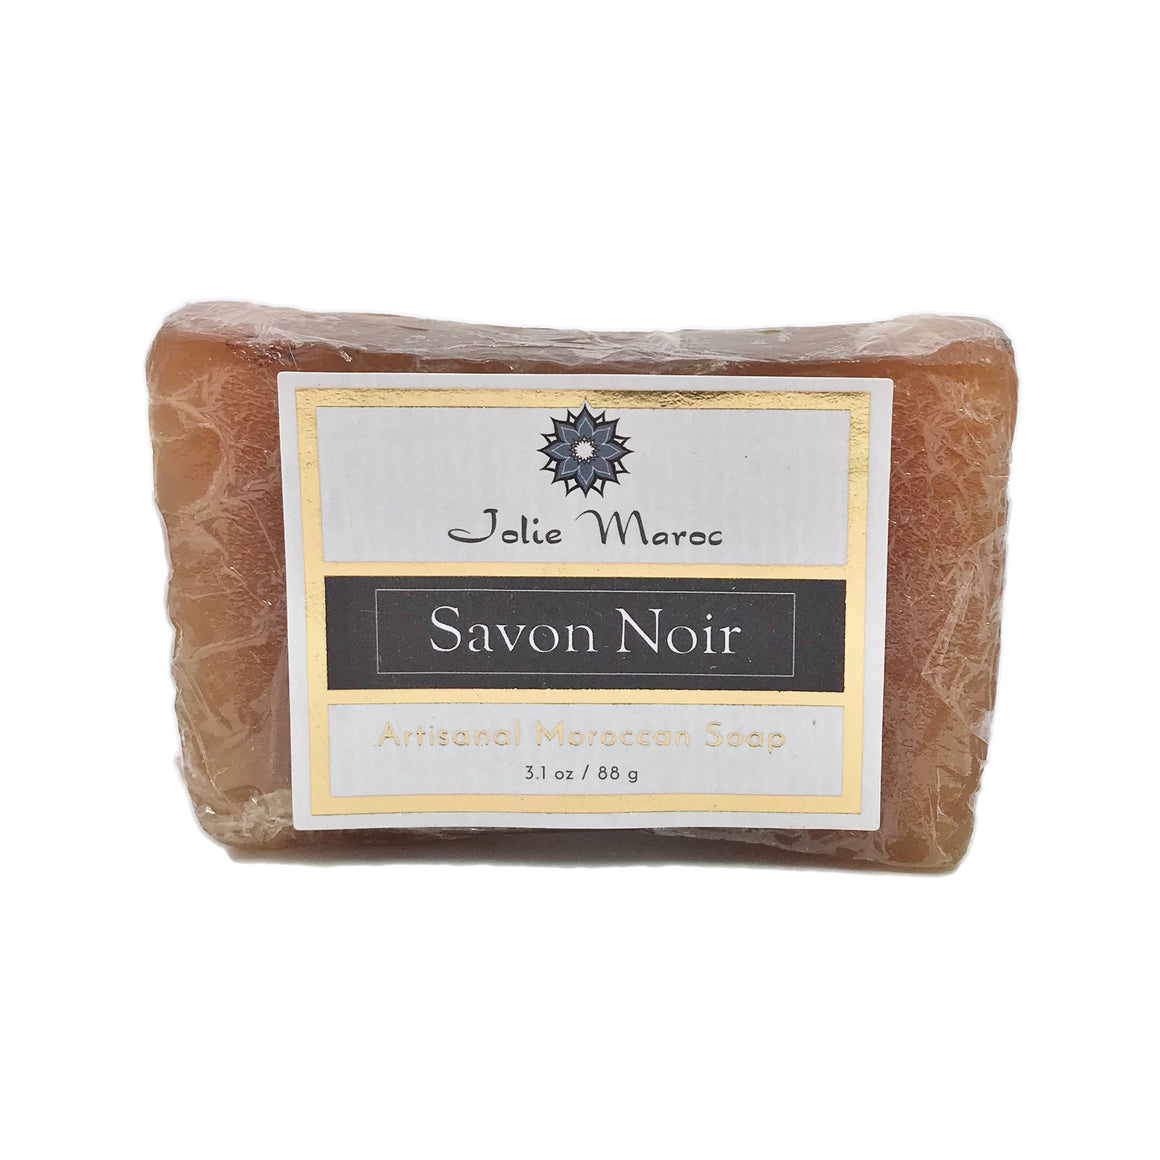 Savon Noir Soap Bar